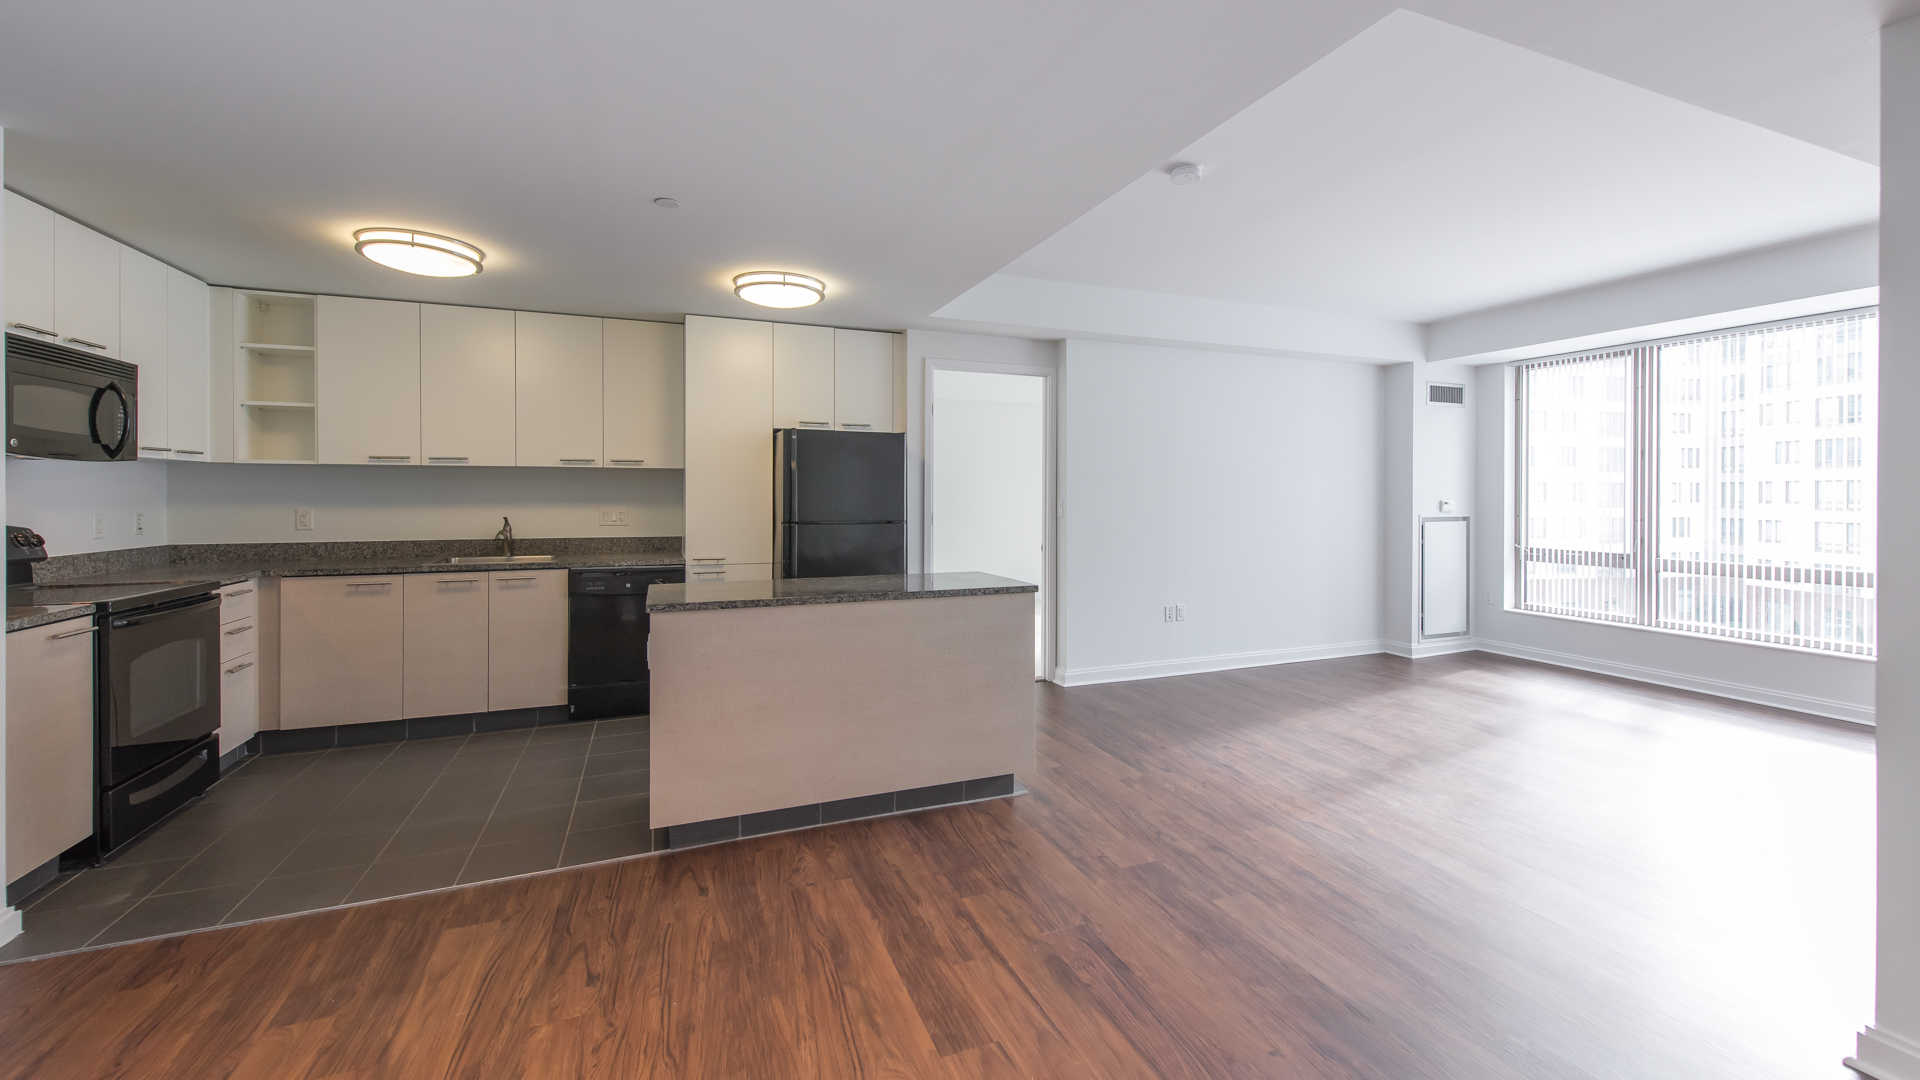 Third square apartments kitchen and dining area